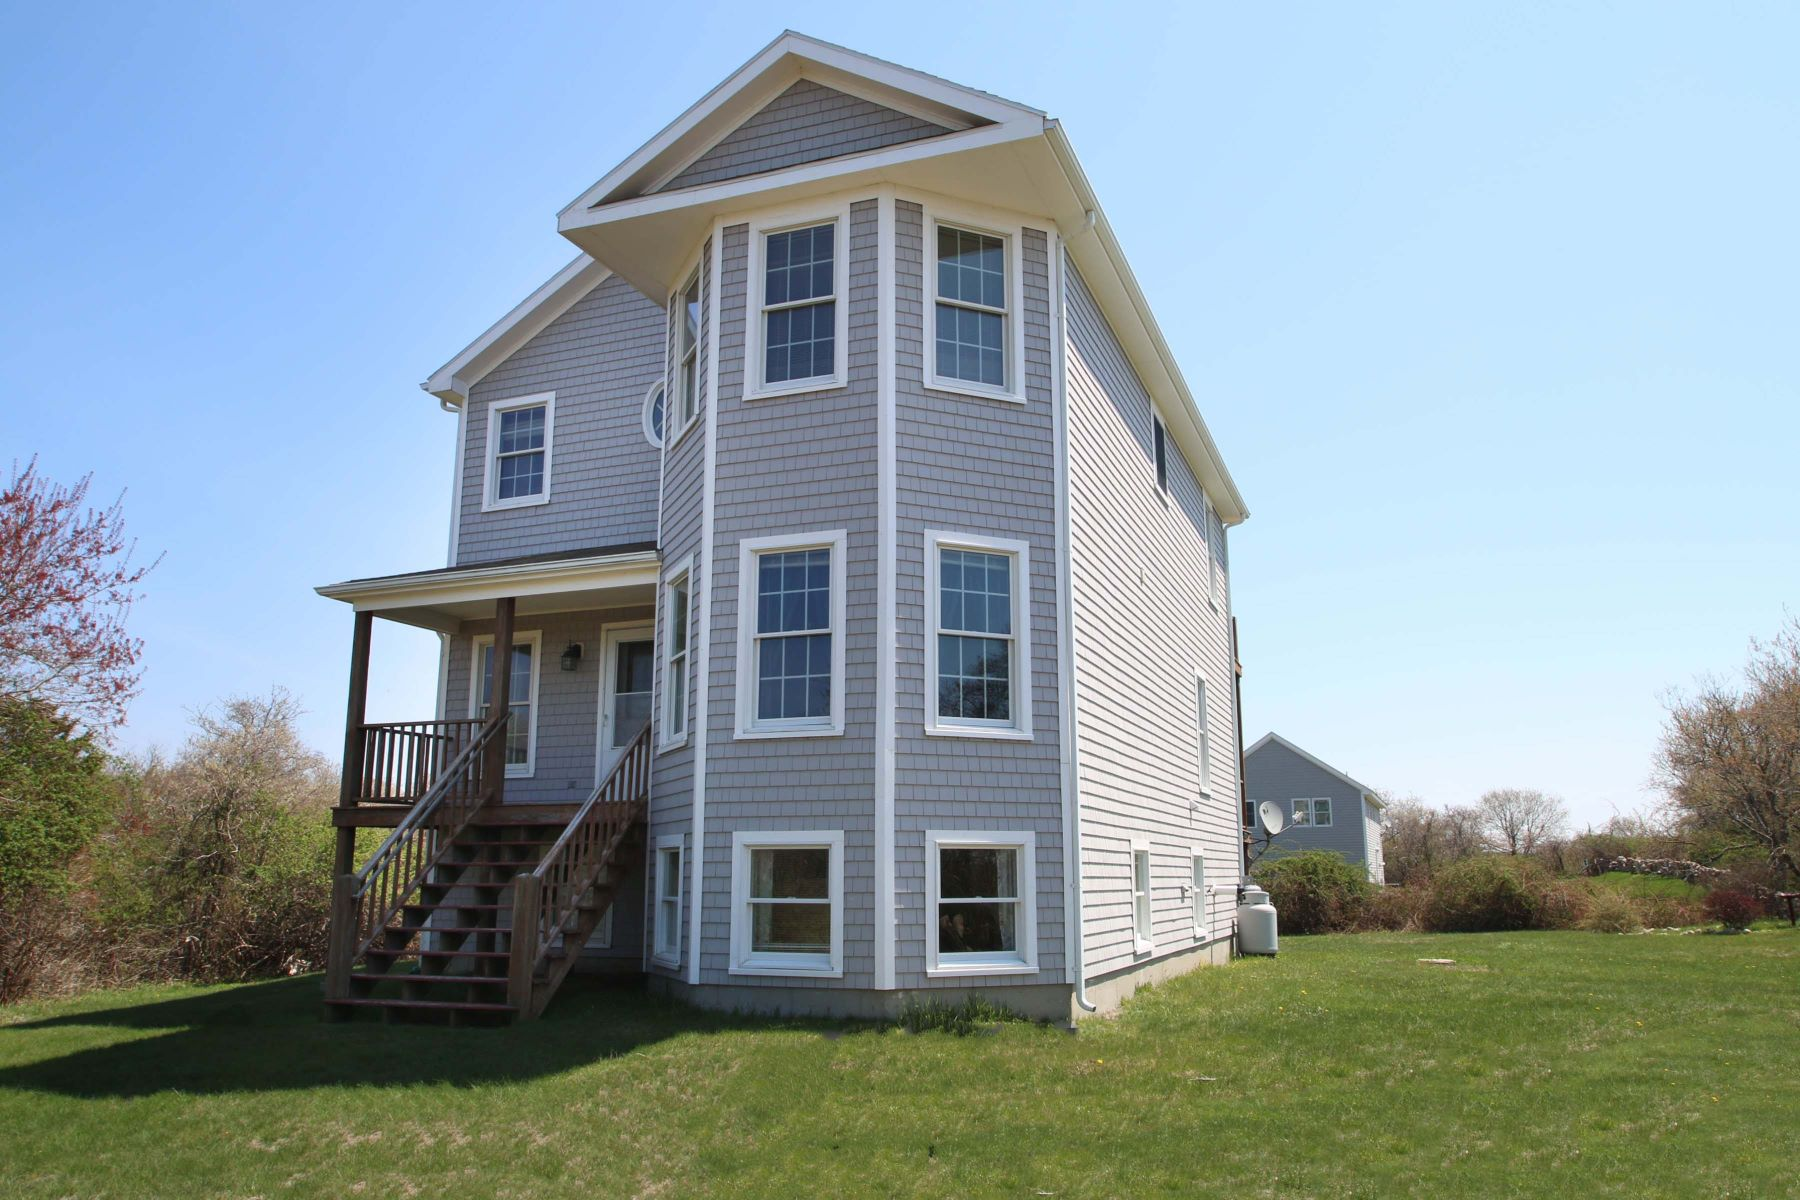 Single Family Homes for Sale at Clayhead Hideaway 1770 Corn Neck Road, Block Island, Rhode Island 02807 United States